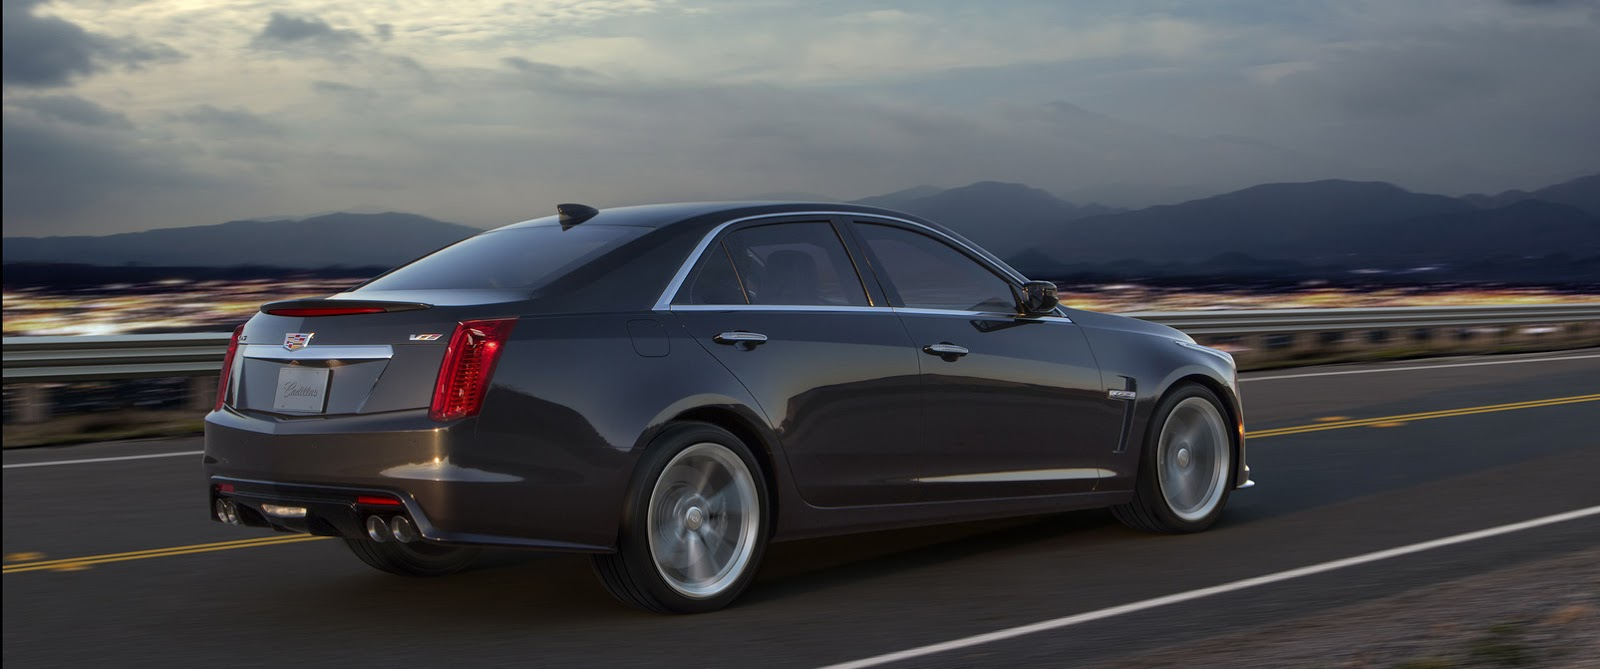 Selection Of New Cadillac Sedans And Crossovers Arriving After Mid